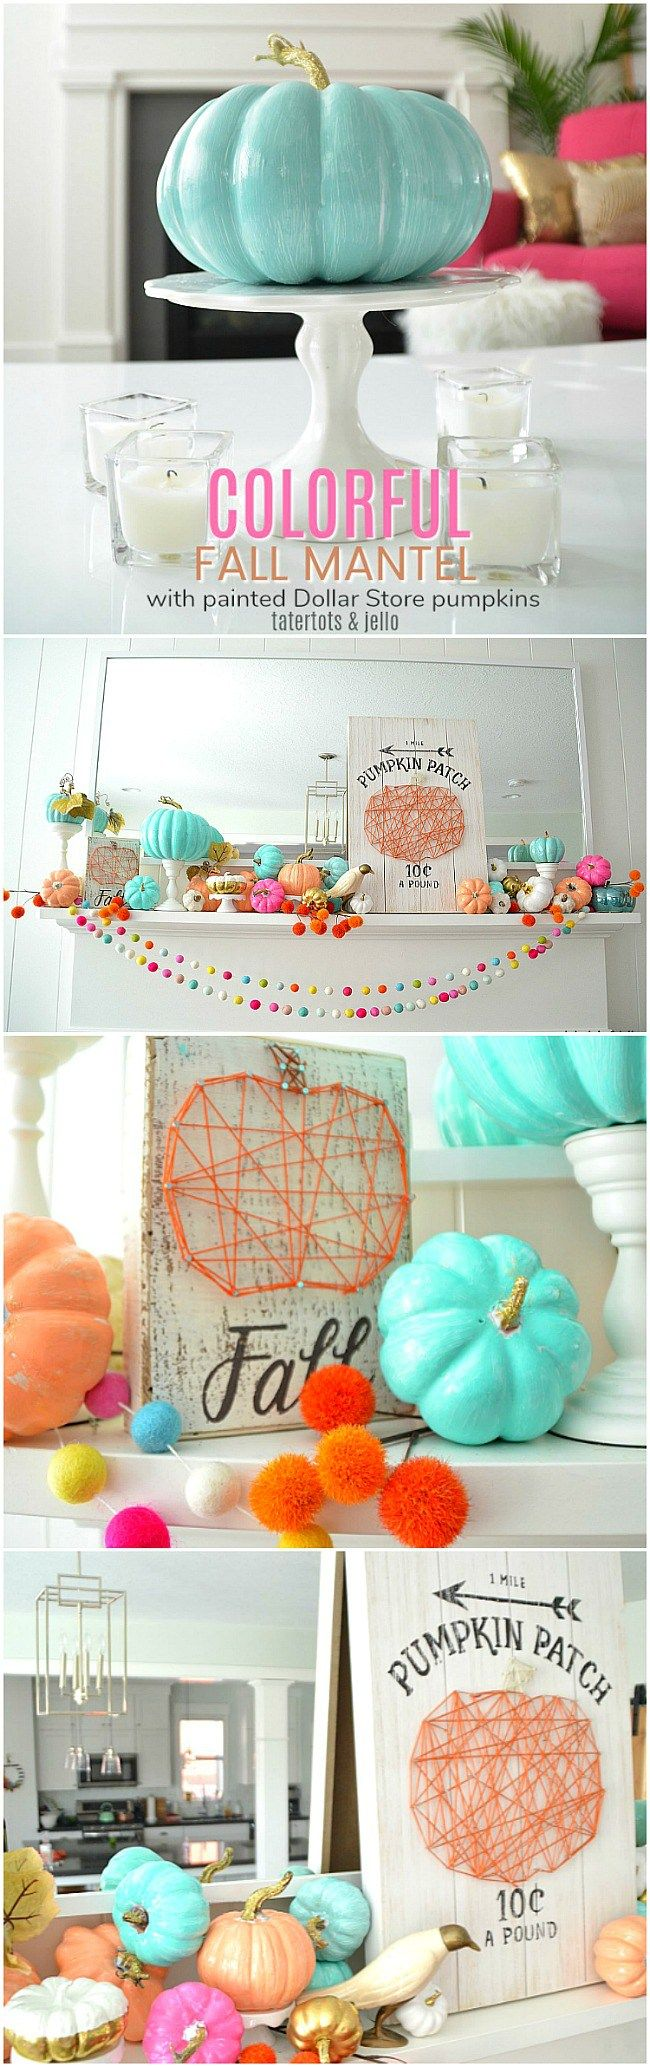 Paint inexpensive dollar tree pumpkins a bright color for happy fall mantel décor.